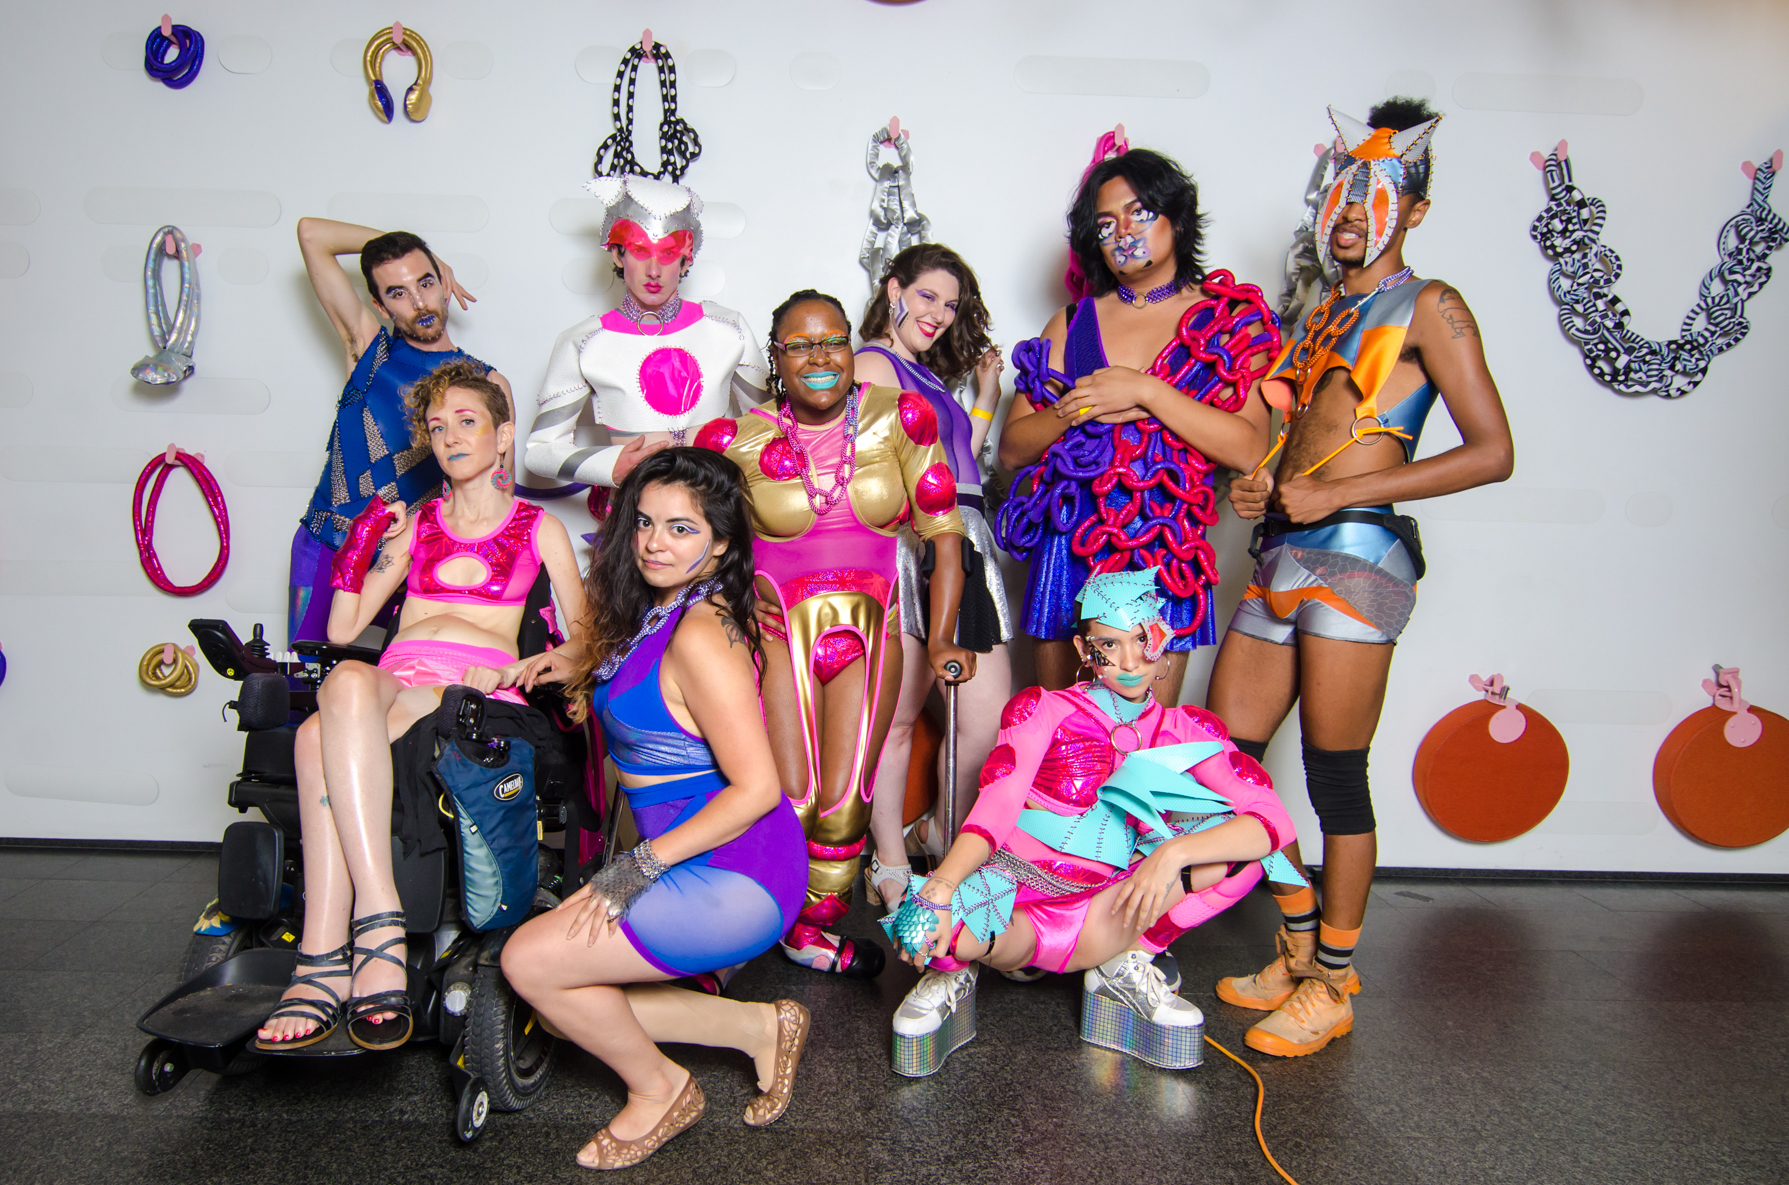 Photo by Colectivo Multipolar of The Radical Visibility Collective at The Museum of Contemporary Art in Chicago. From left to right: Gabriel Anaya in blue and silver vinyl and chainmaille armor, Carrie K in all pink with a hand brace cover, crop top with chest hole and shorts, Vogds in white vinyl and pink crop top and matching helmet with a chainmaille choker, Michelle Zacarias in a blue and purple halter crop and miniskirt, Miss Alexis La'Shay Smith in a gold and pink crop top and holey singlet with muscle poufs, Nina Litoff in a purple bodysuit and black/ holo circle skirt, Sky Cubacub in pink spandex with geometric aqua vinyl headpiece, spikey crop top and leg armor, Ubae in a purple skirted one piece bathing suit and soft sculpture shawl in pink and purple and Compton Q in grey, orange and blue shorts, crop top and horned mask headpiece.